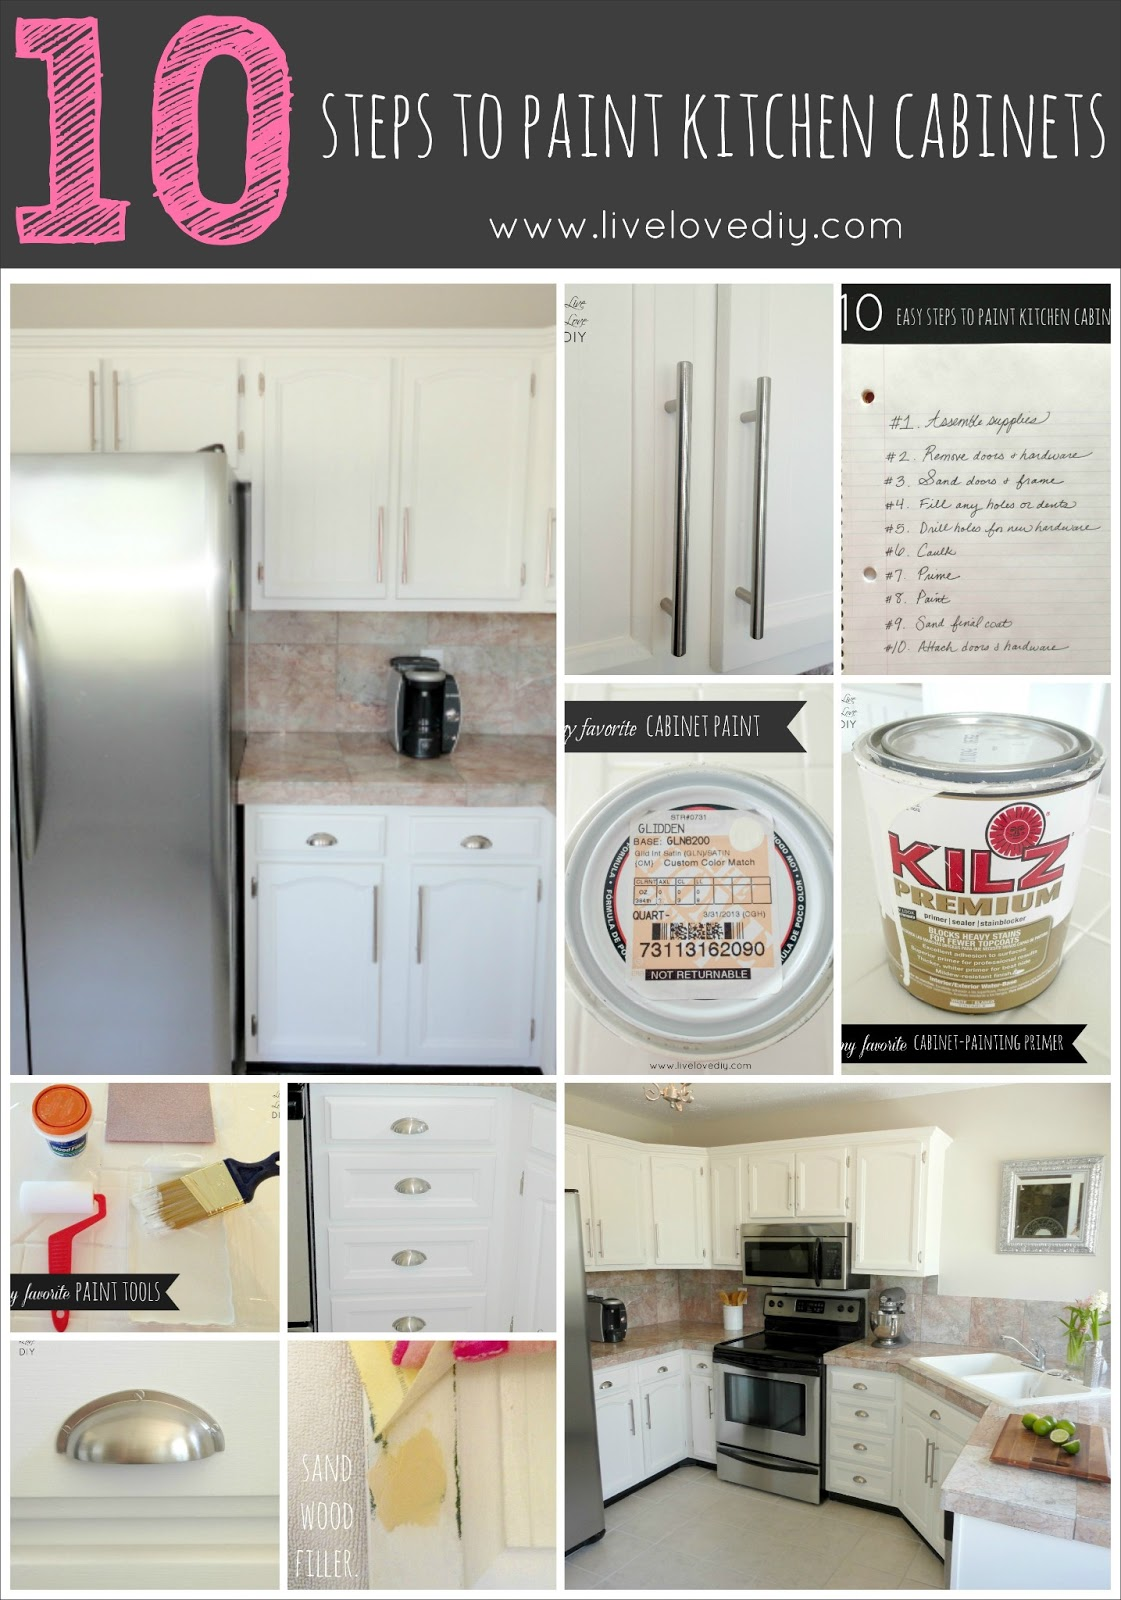 how to paint kitchen cabinets in 10 easy steps - Can You Paint Your Kitchen Cabinets